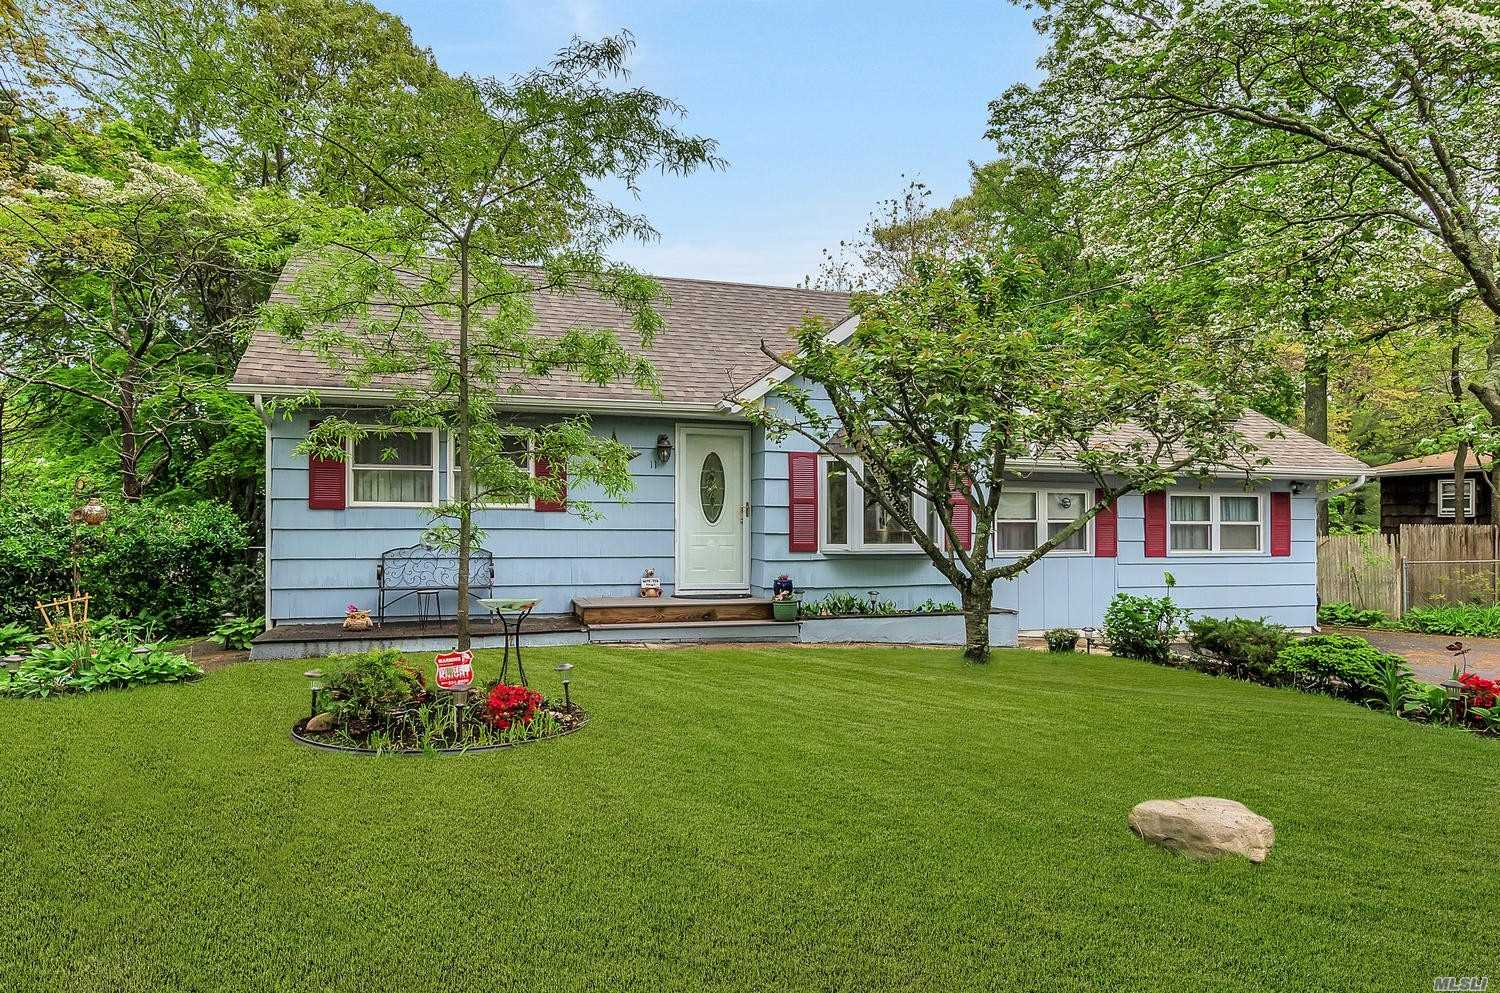 Wide Line Ranch One Block From Long Island Sound Private Beach Club! Newly Updated, House Painted, New Floors, Doors, Roof,  And More!